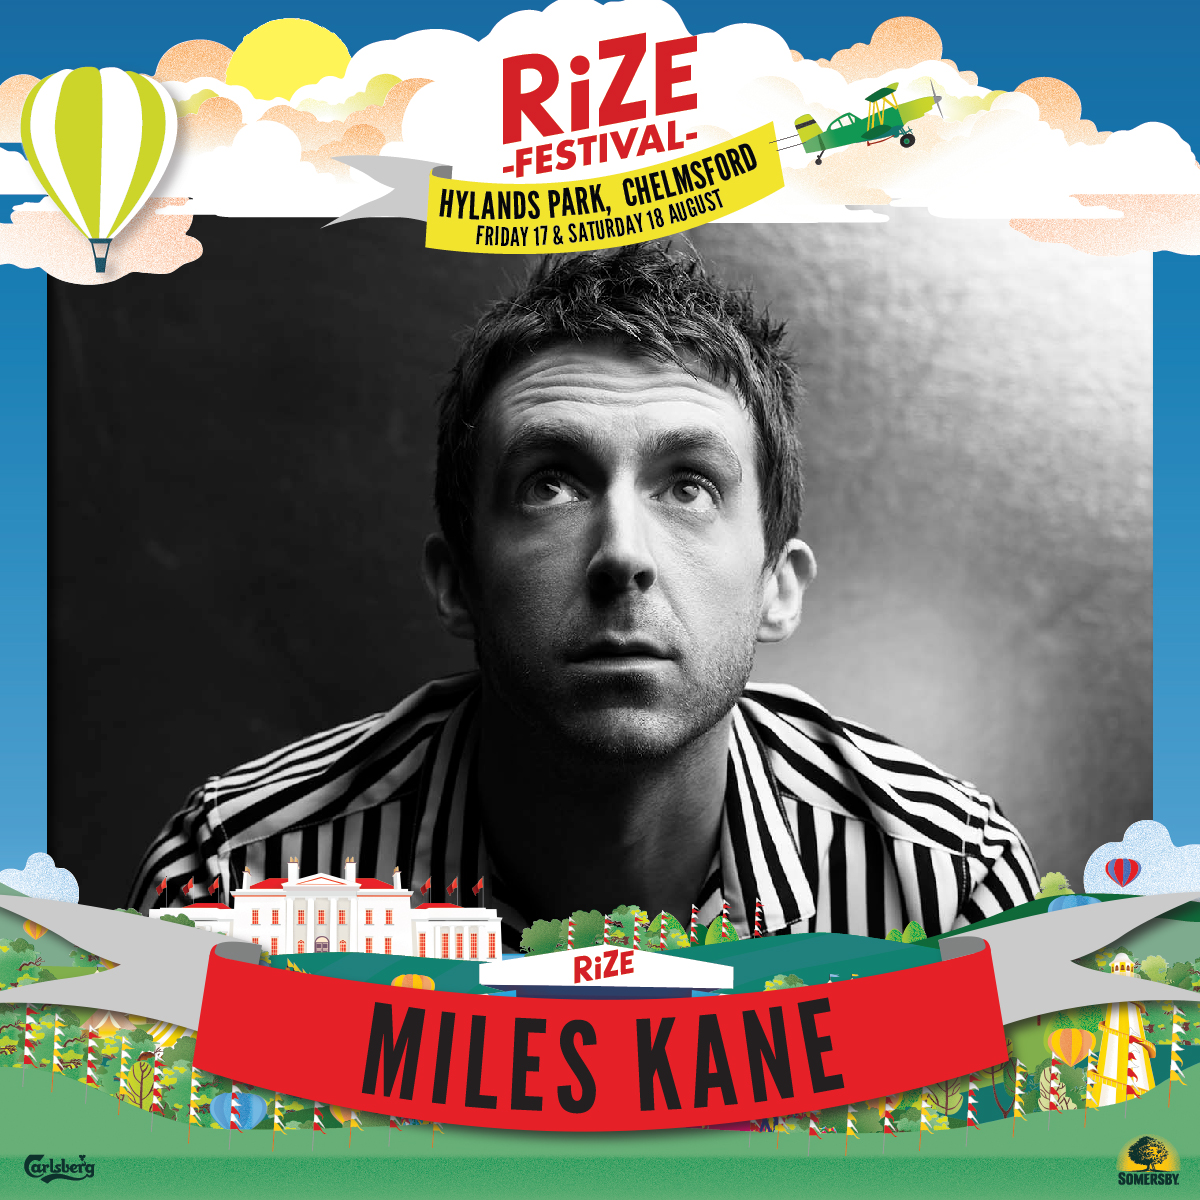 Taking Over: Miles Kane Announced For RiZE Festival 2018